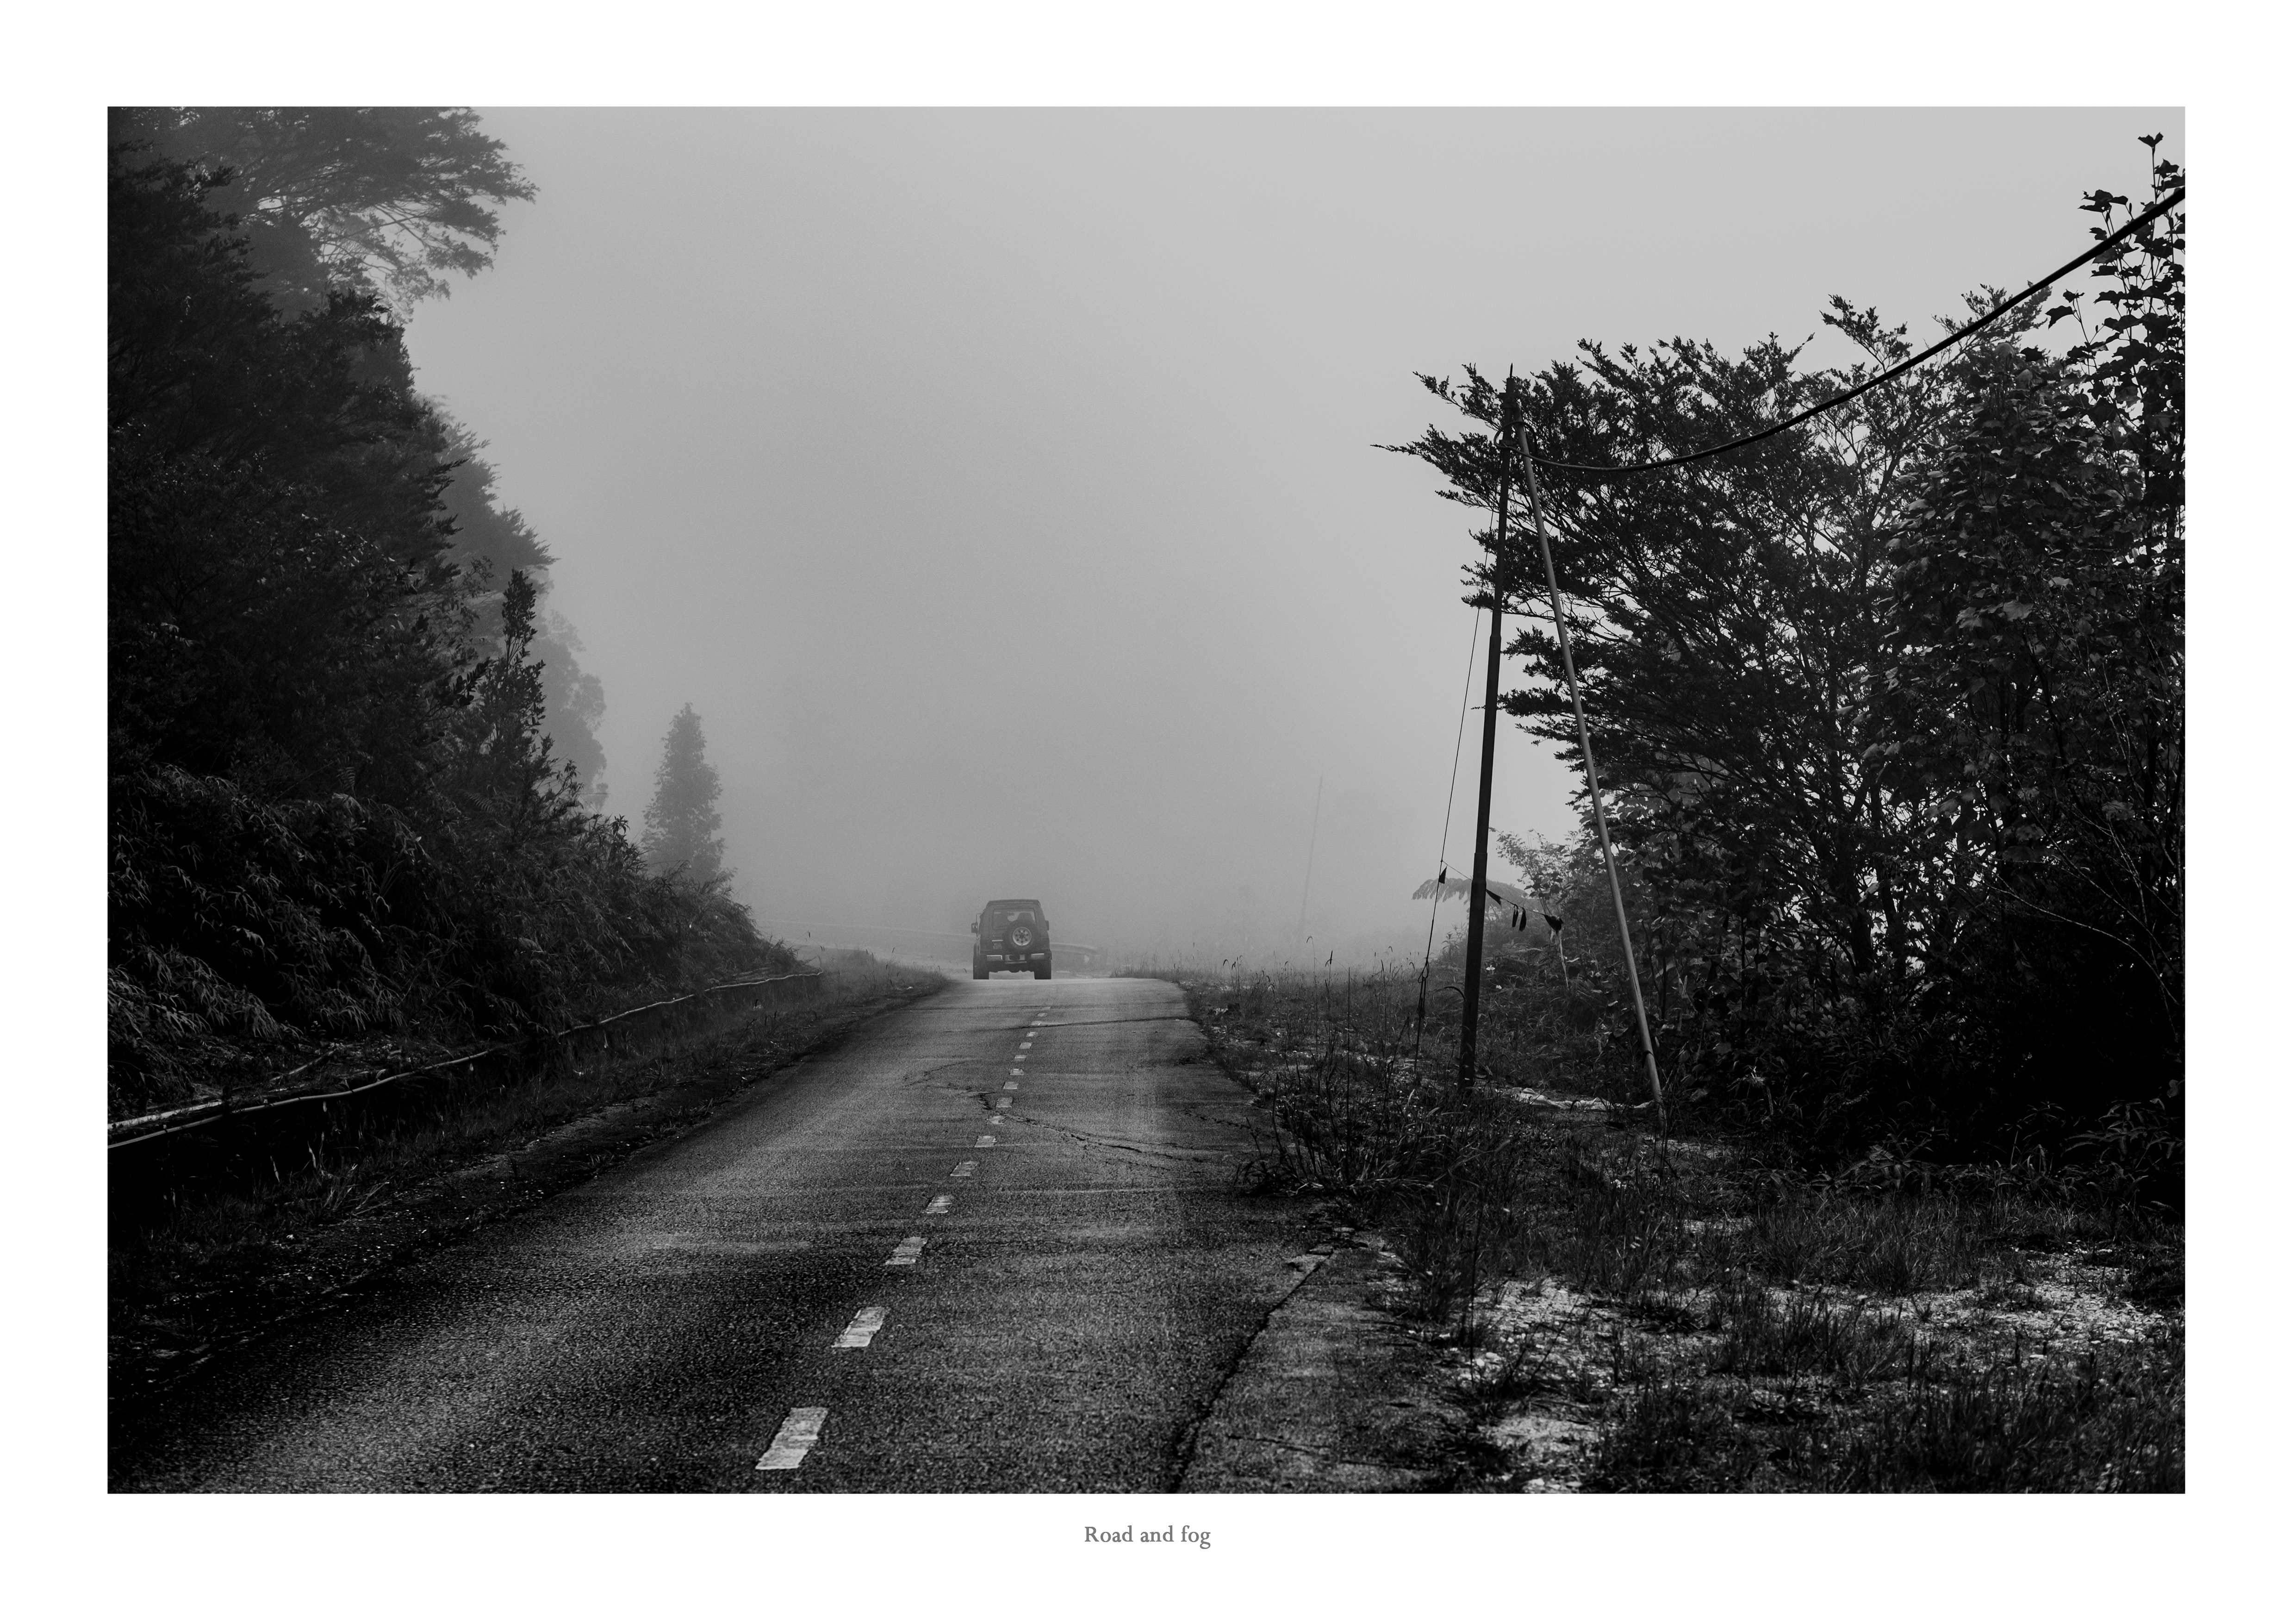 The road and fog